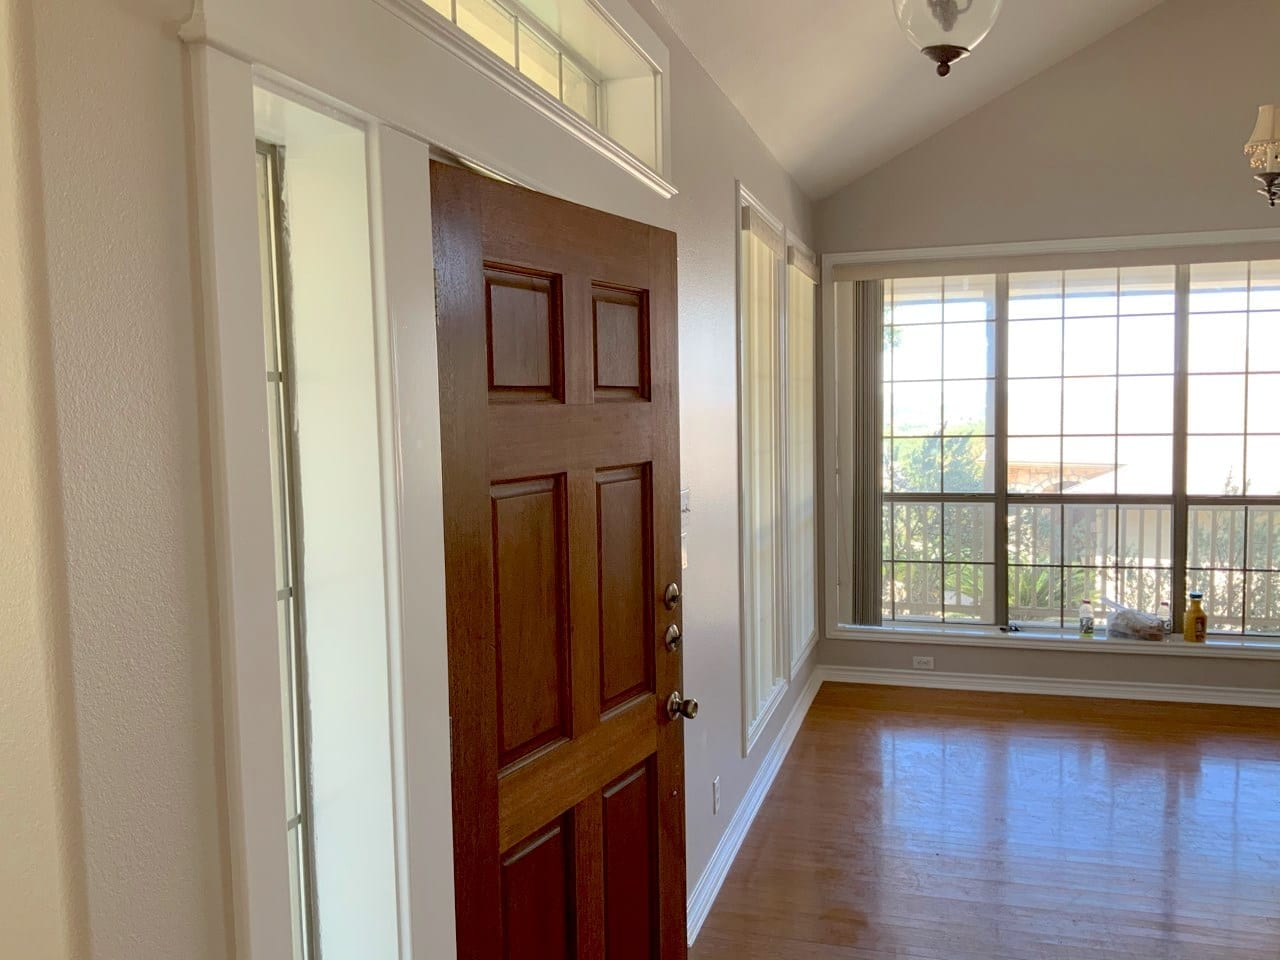 stained interior door and painted walls